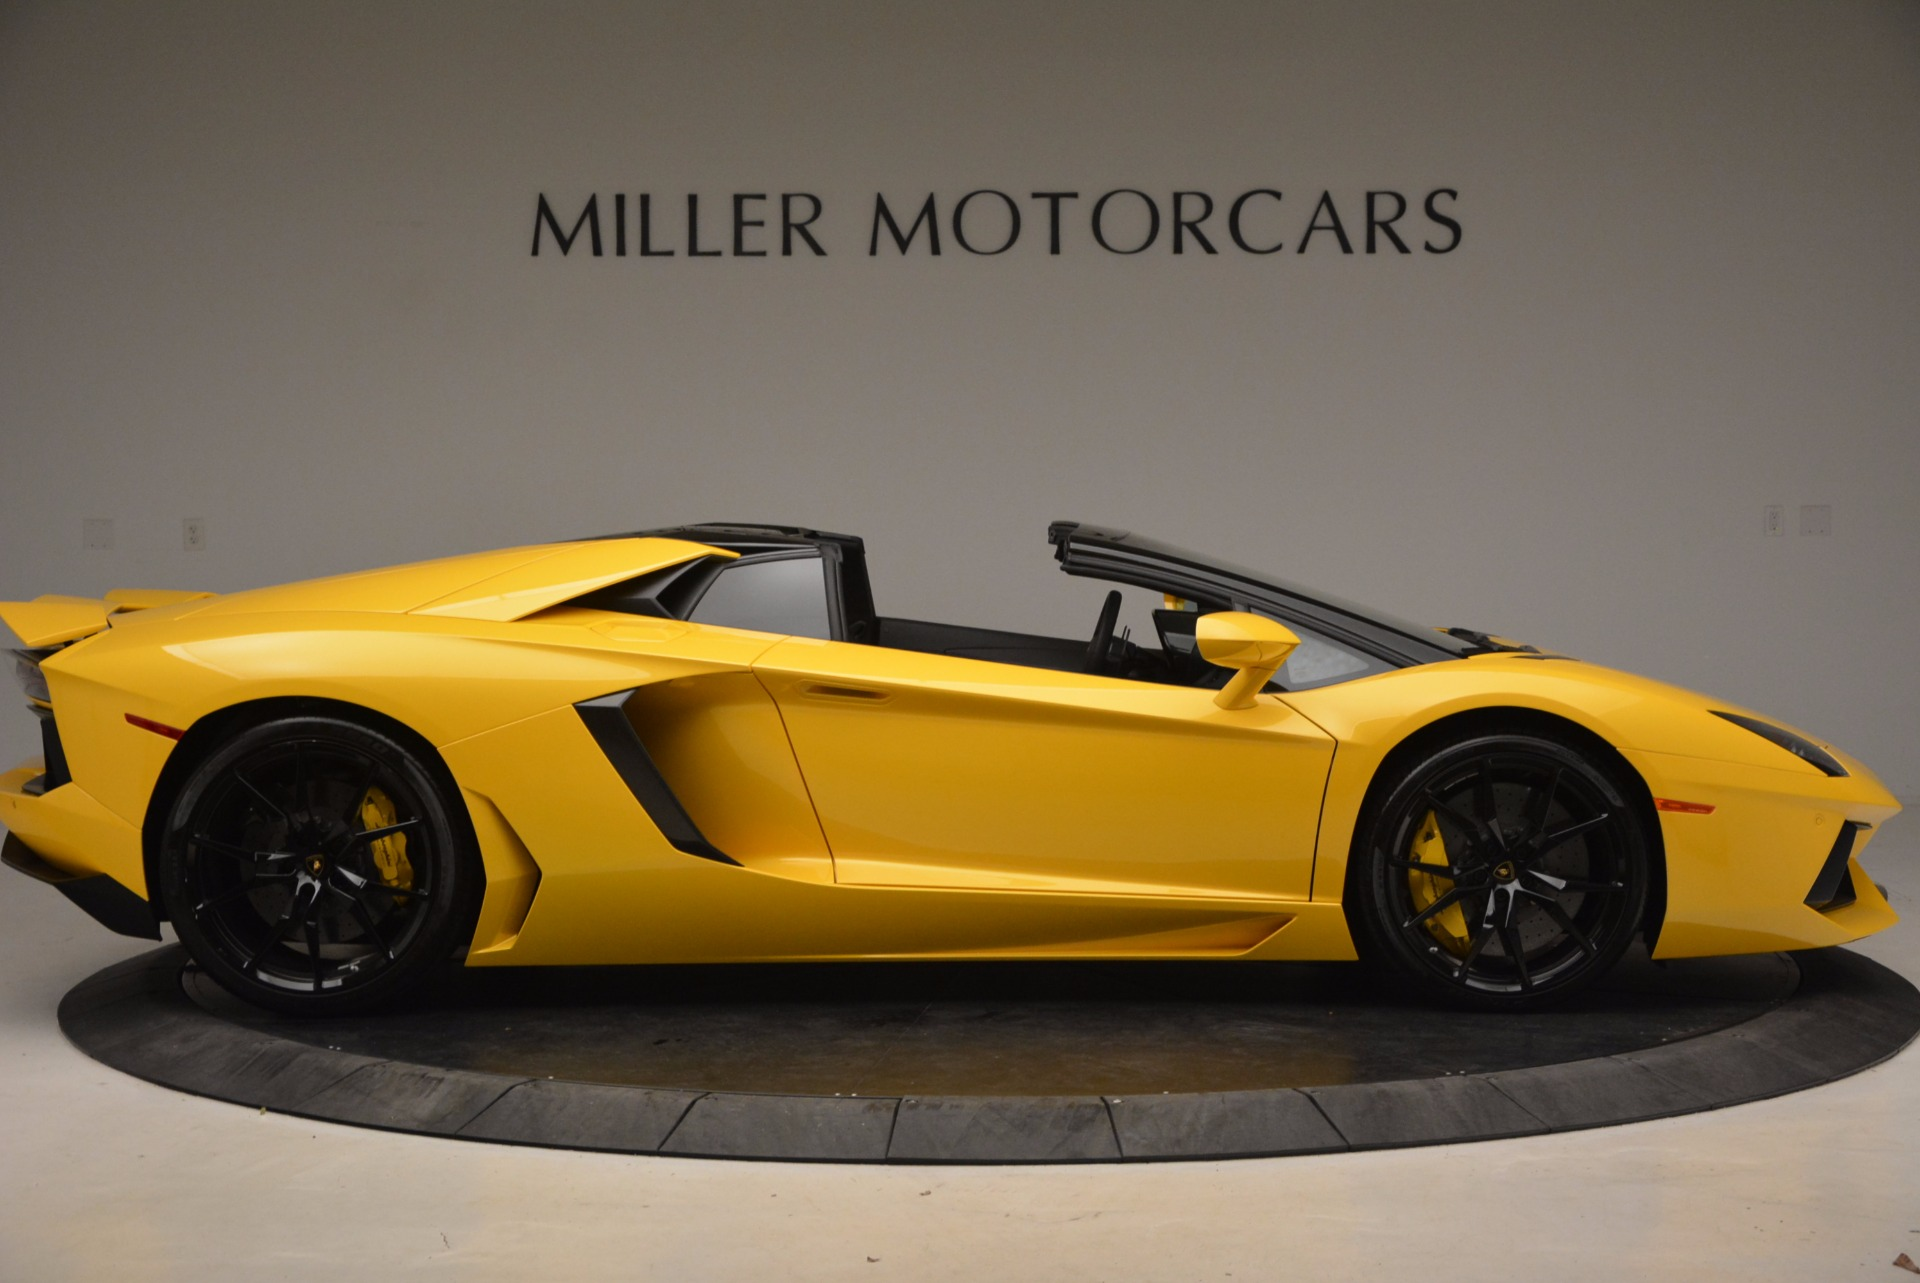 Used 2015 Lamborghini Aventador LP 700-4 Roadster For Sale In Westport, CT 1774_p10